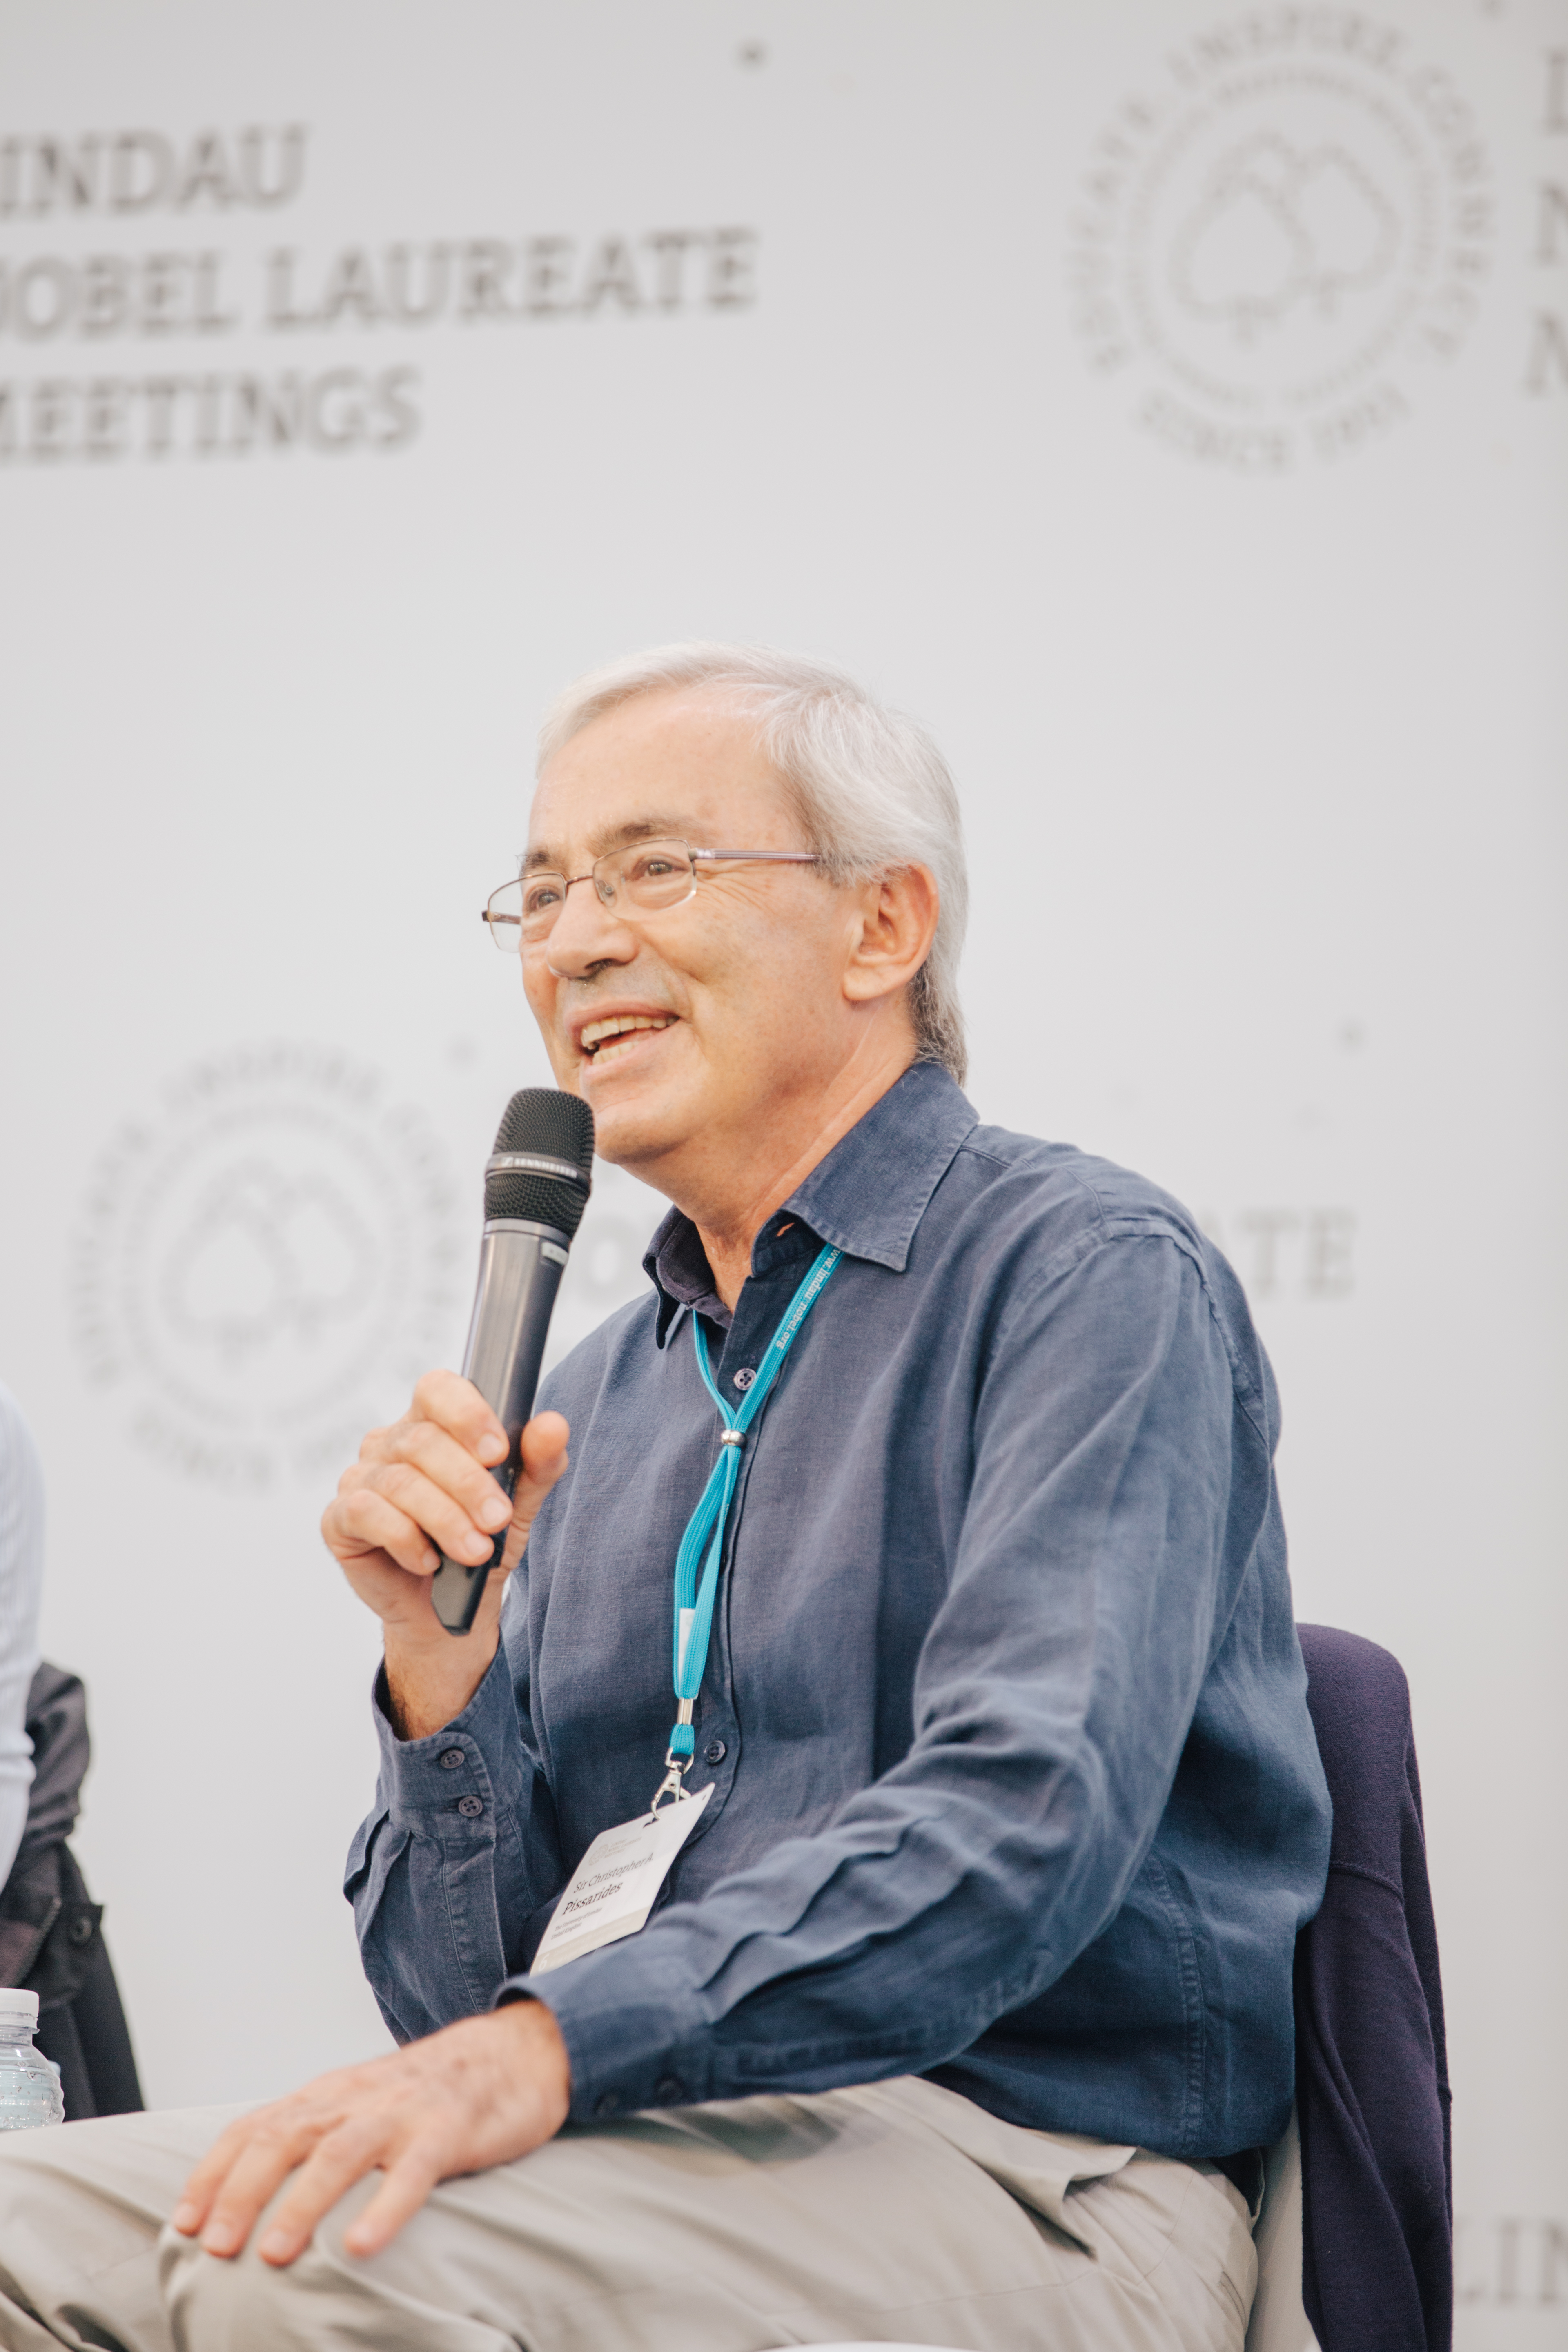 Sir Christopher Pissarides during a Press Talk at the 6th Lindau Meeting on Economic Sciences. Picture/Credit: Julia Nimke/Lindau Nobel Laureate Meetings